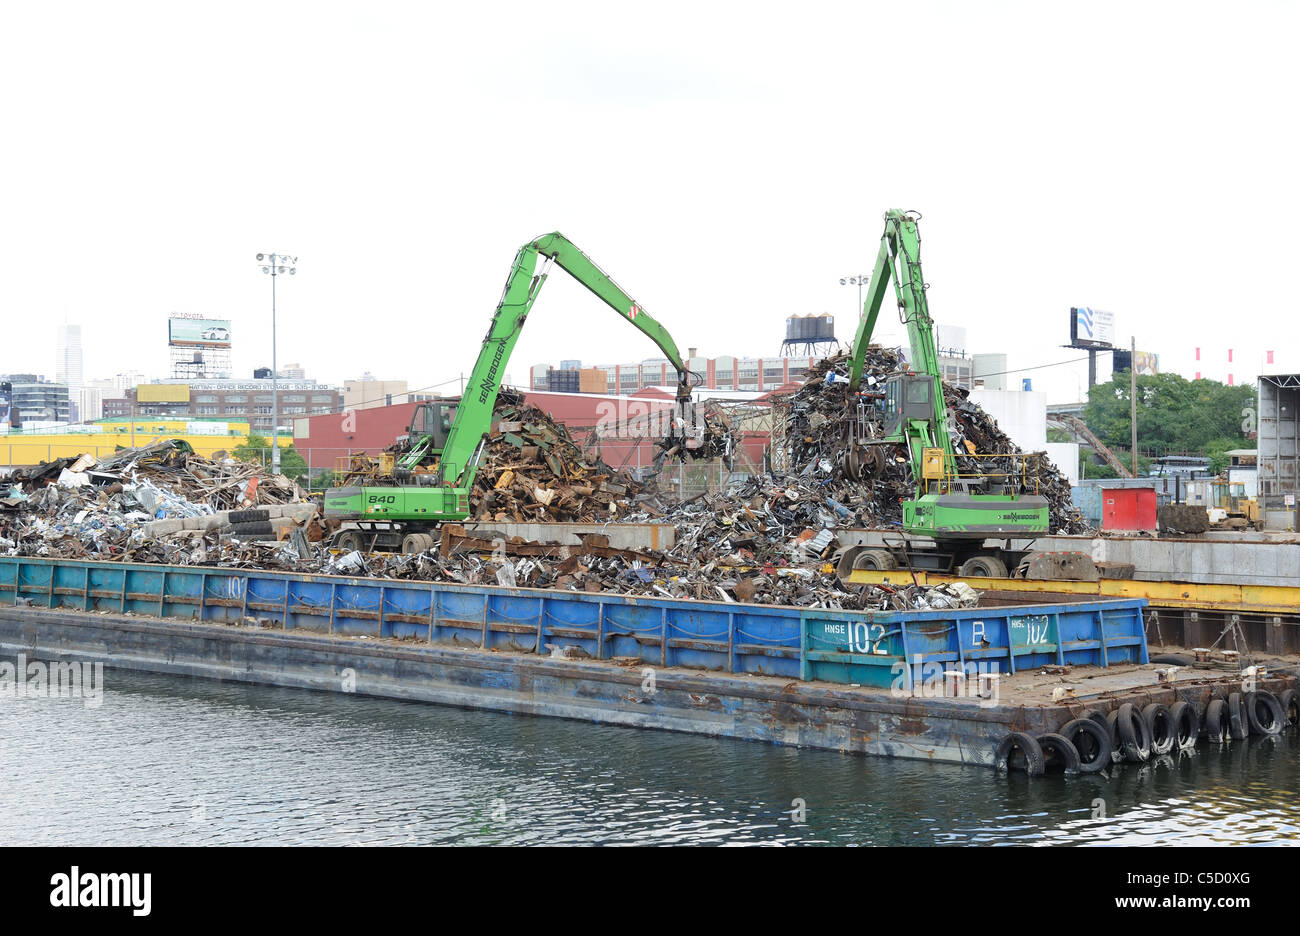 Sims Metal recycles scrap metal on Newtown Creek, a 3.8-mile-long estuary of the East River in New York City. - Stock Image